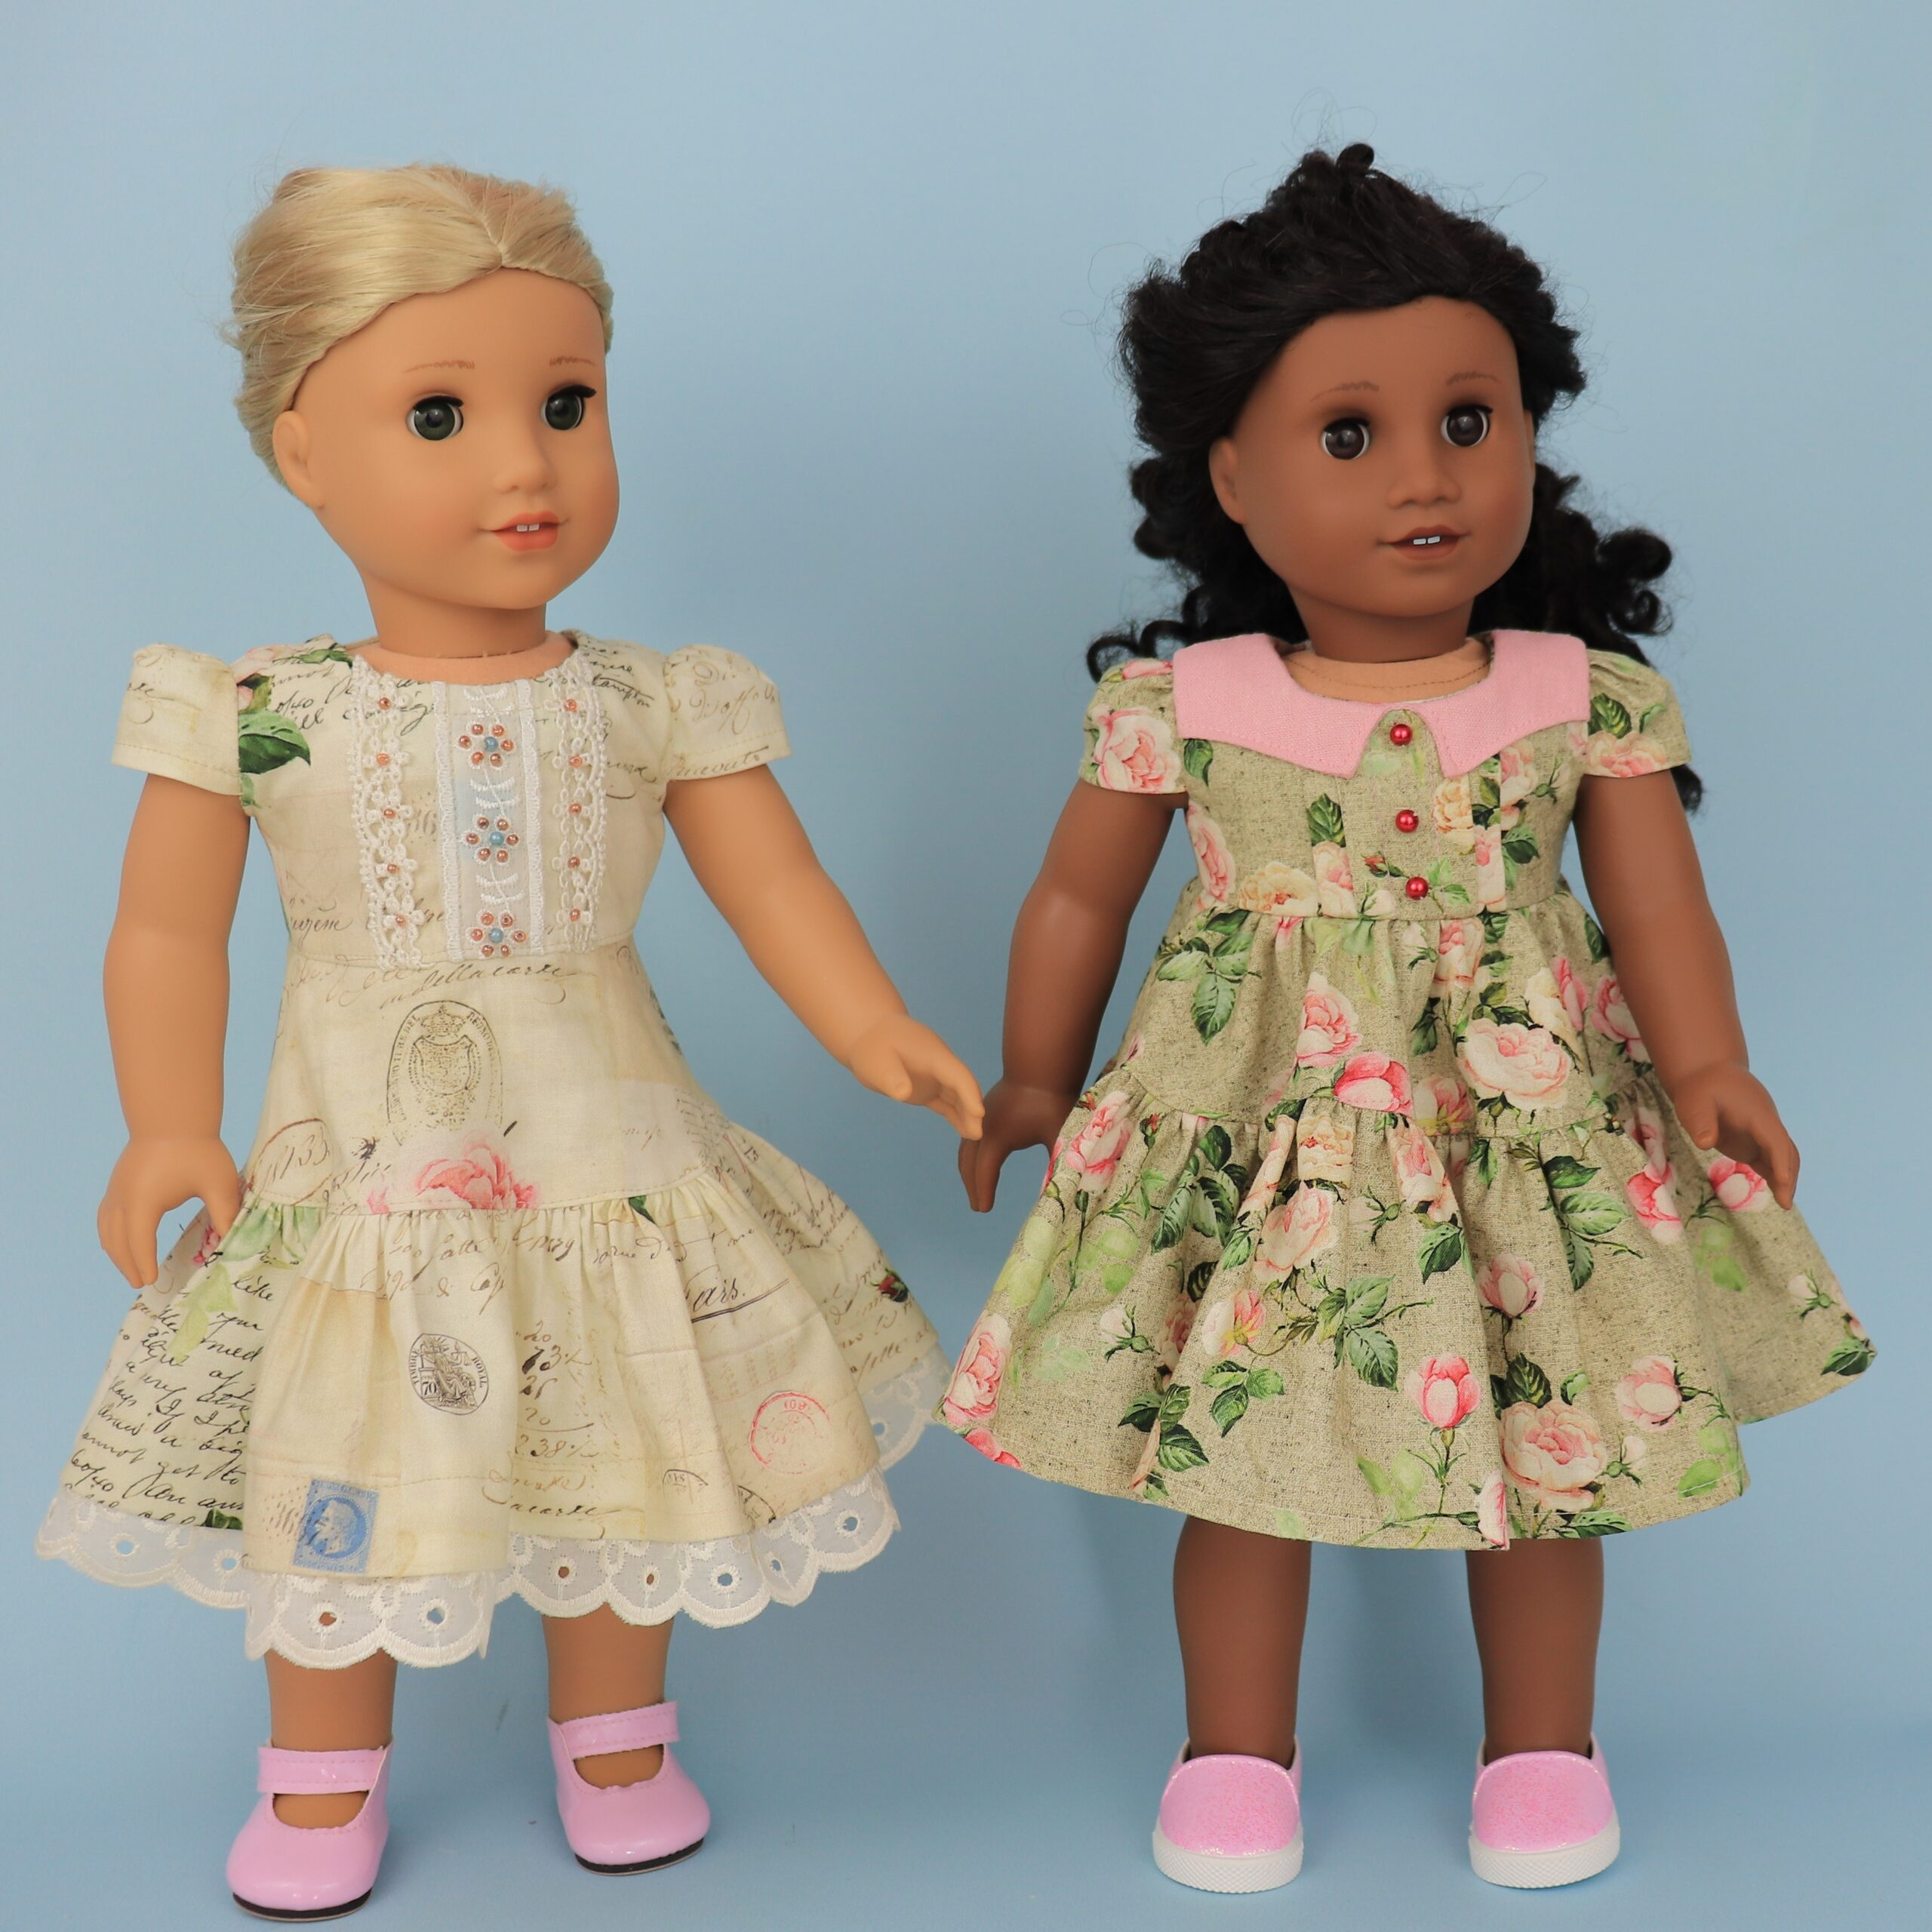 doll dress clothes, american doll, learn to sew, beginner project, pixie faire